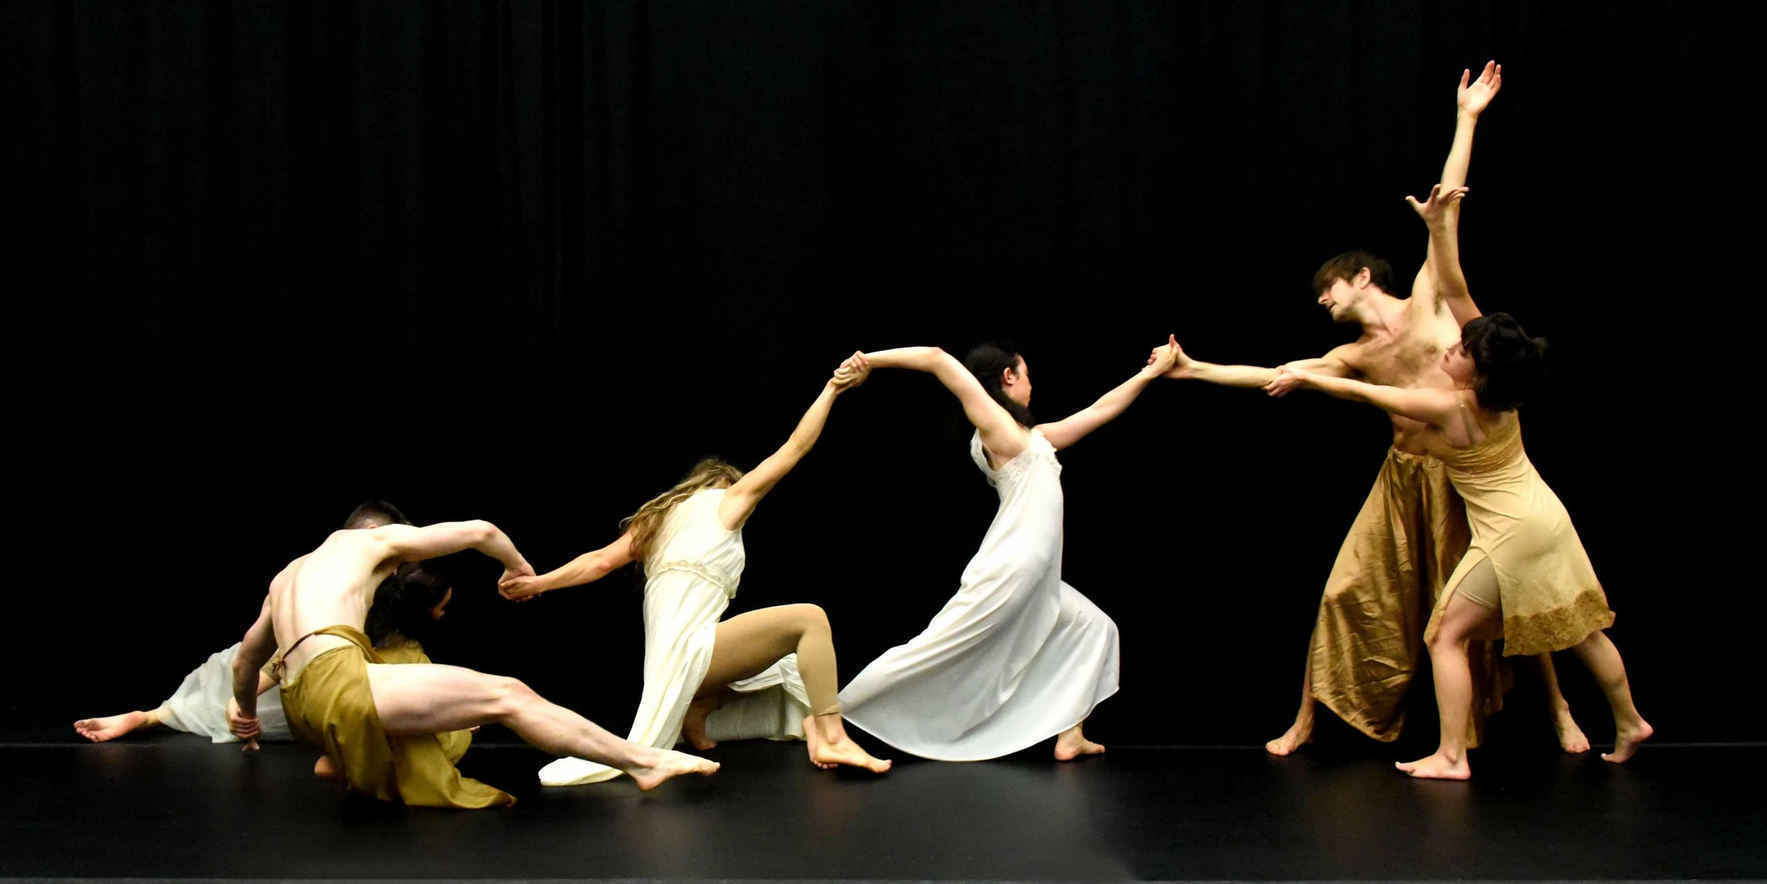 Make a difference through support of the arts and a dedicated dance company image